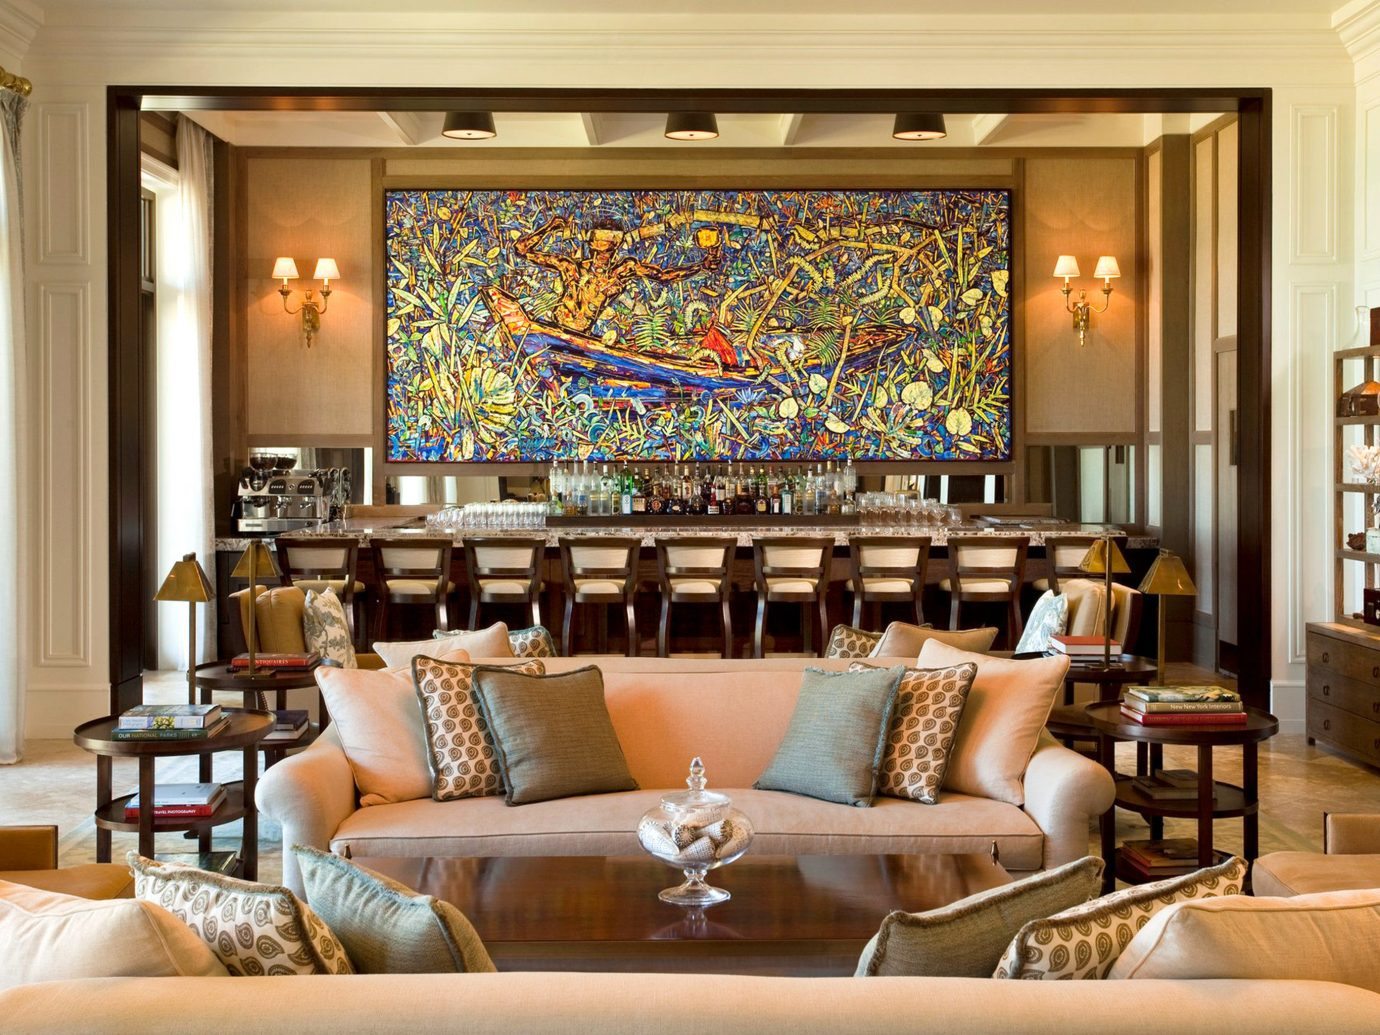 Bar Design Drink Hotels Lounge Luxury Resort indoor room Living floor wall window chair living room property Lobby ceiling estate interior design home decorated dining room furniture restaurant nice Suite area